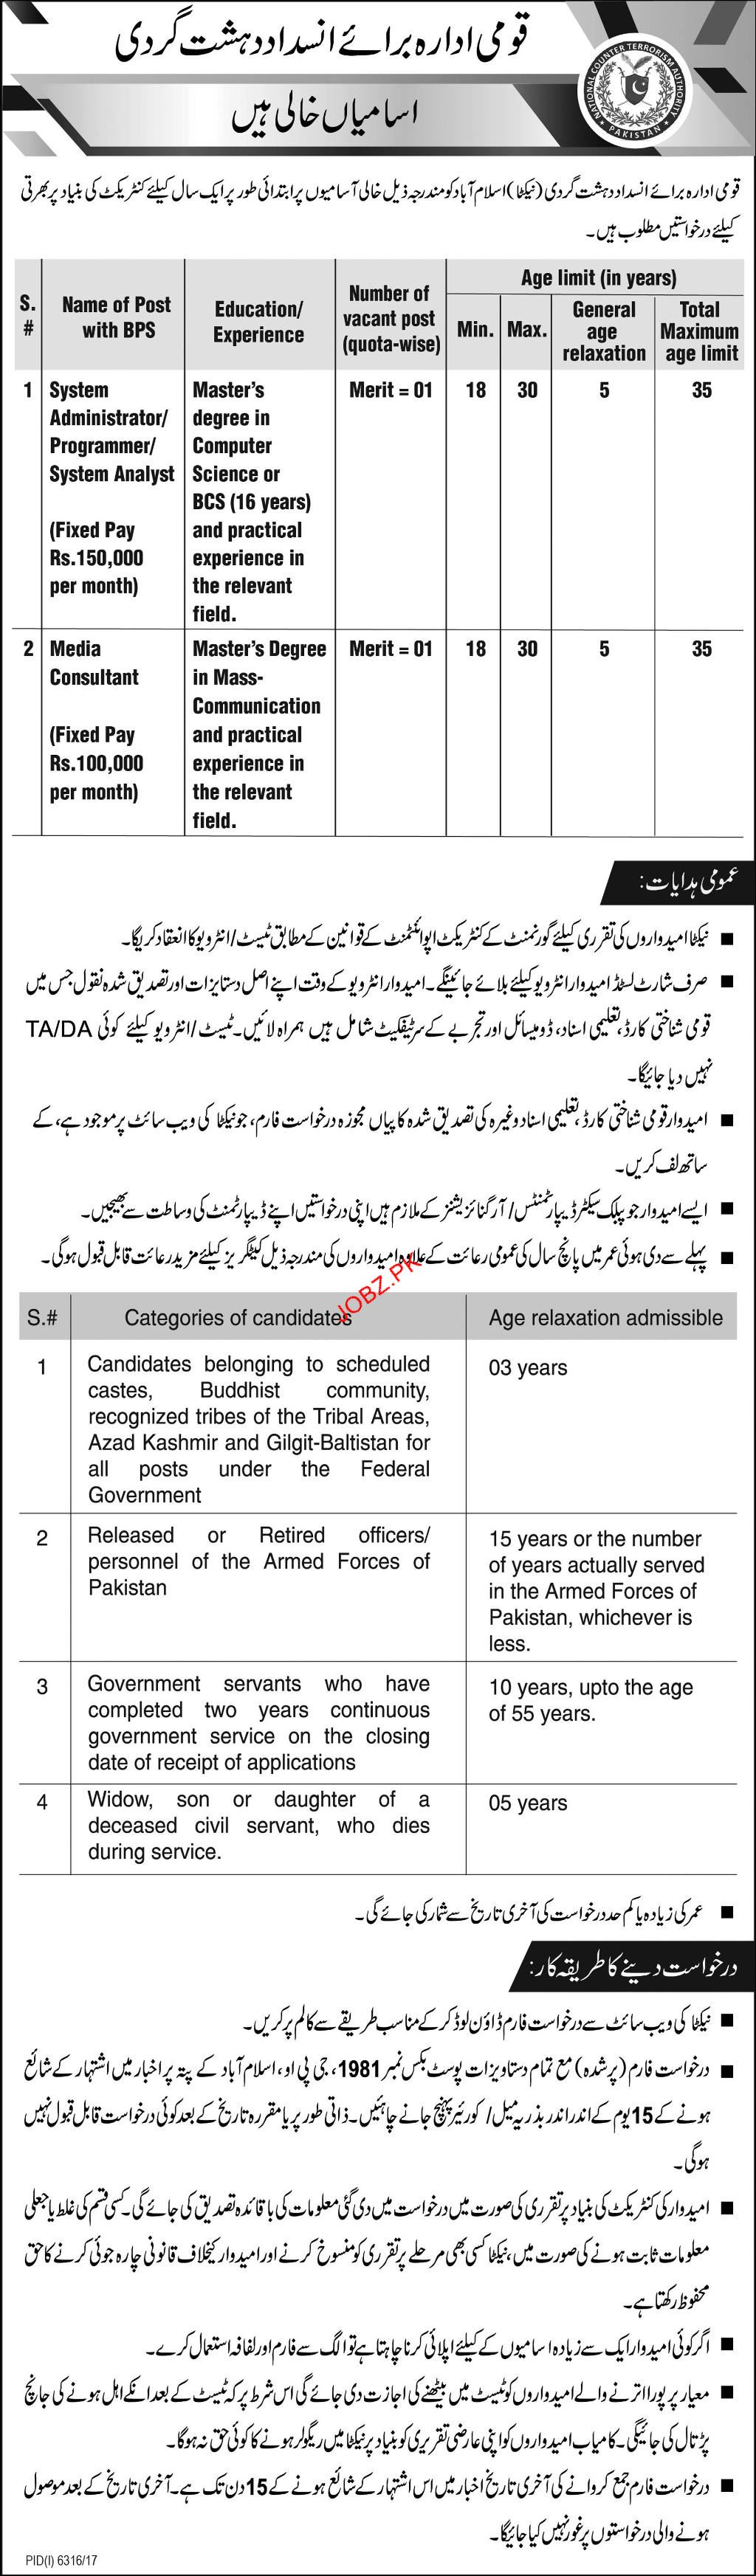 National Counter Terrorism Authority NACTA Jobs Open